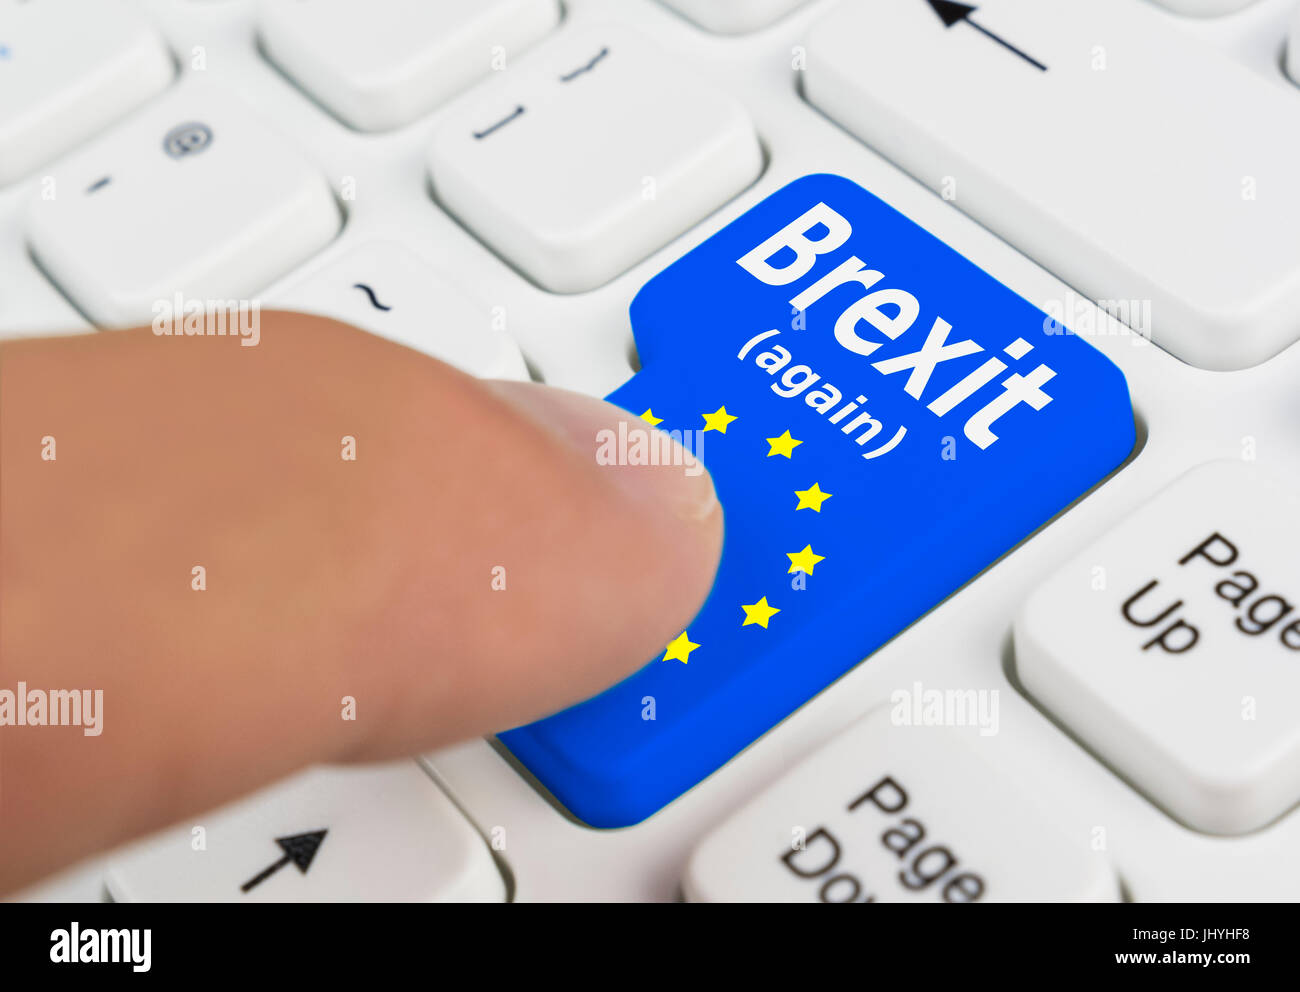 Brexit button showing someone voting for the UK to exit the EU in a 2nd referendum. Second Brexit referendum. Second - Stock Image